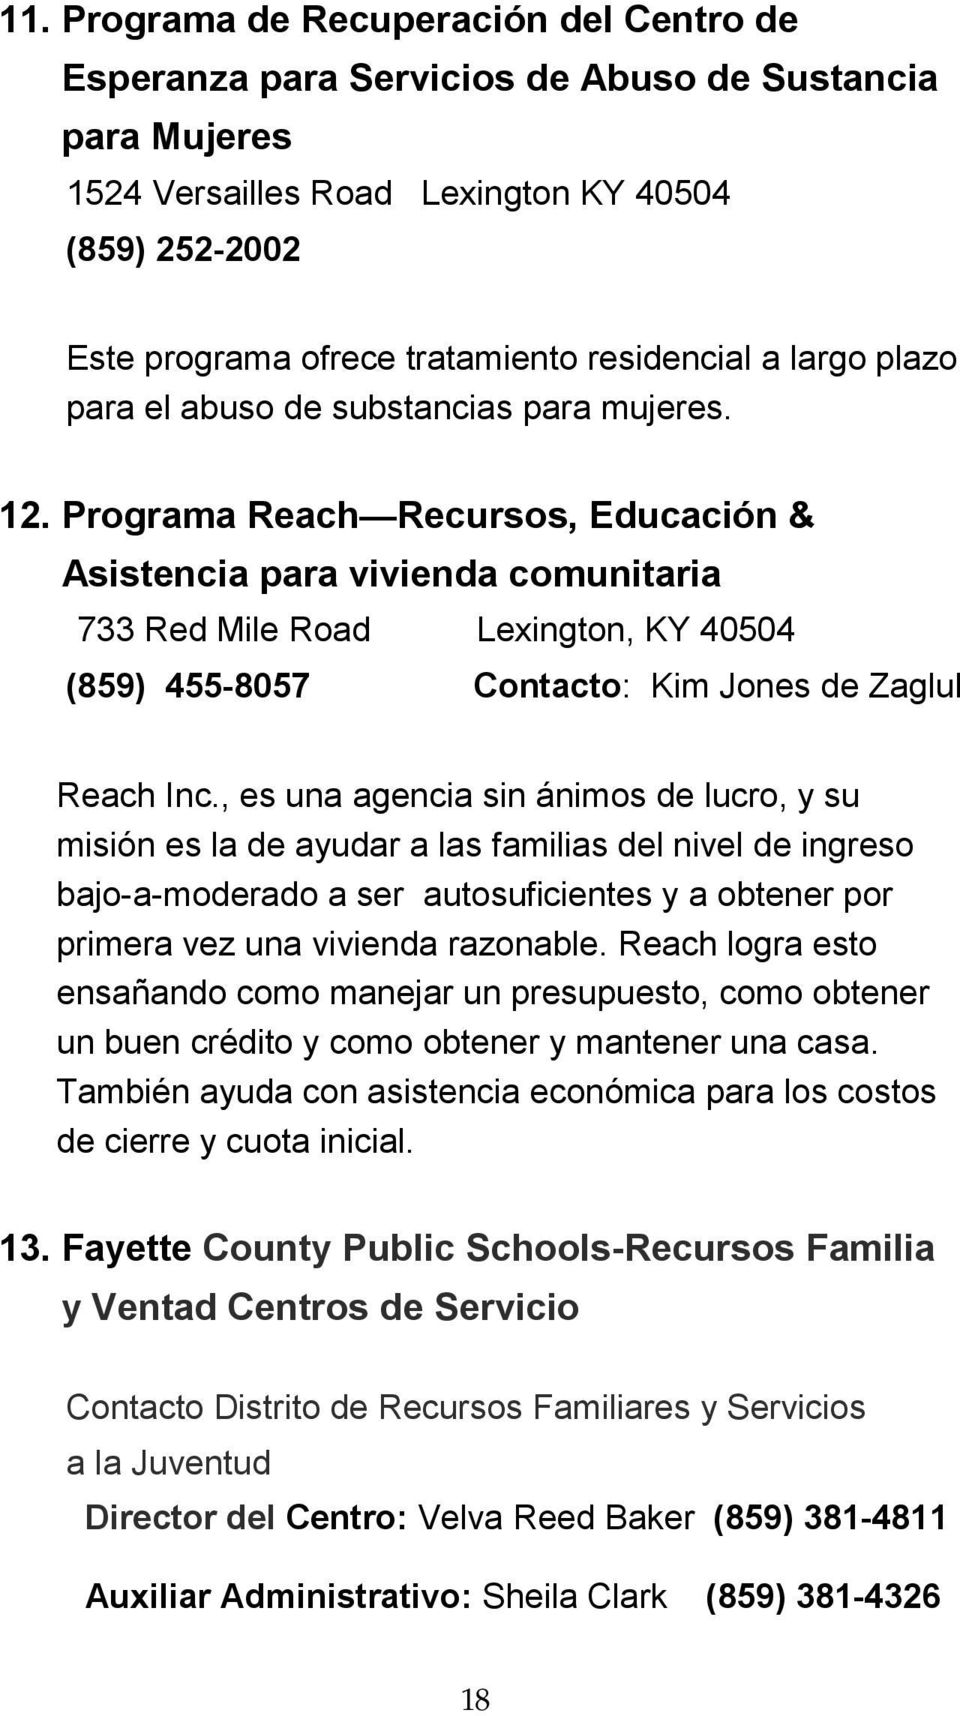 Programa Reach Recursos, Educación & Asistencia para vivienda comunitaria 733 Red Mile Road Lexington, KY 40504 (859) 455-8057 Contacto: Kim Jones de Zaglul Reach Inc.